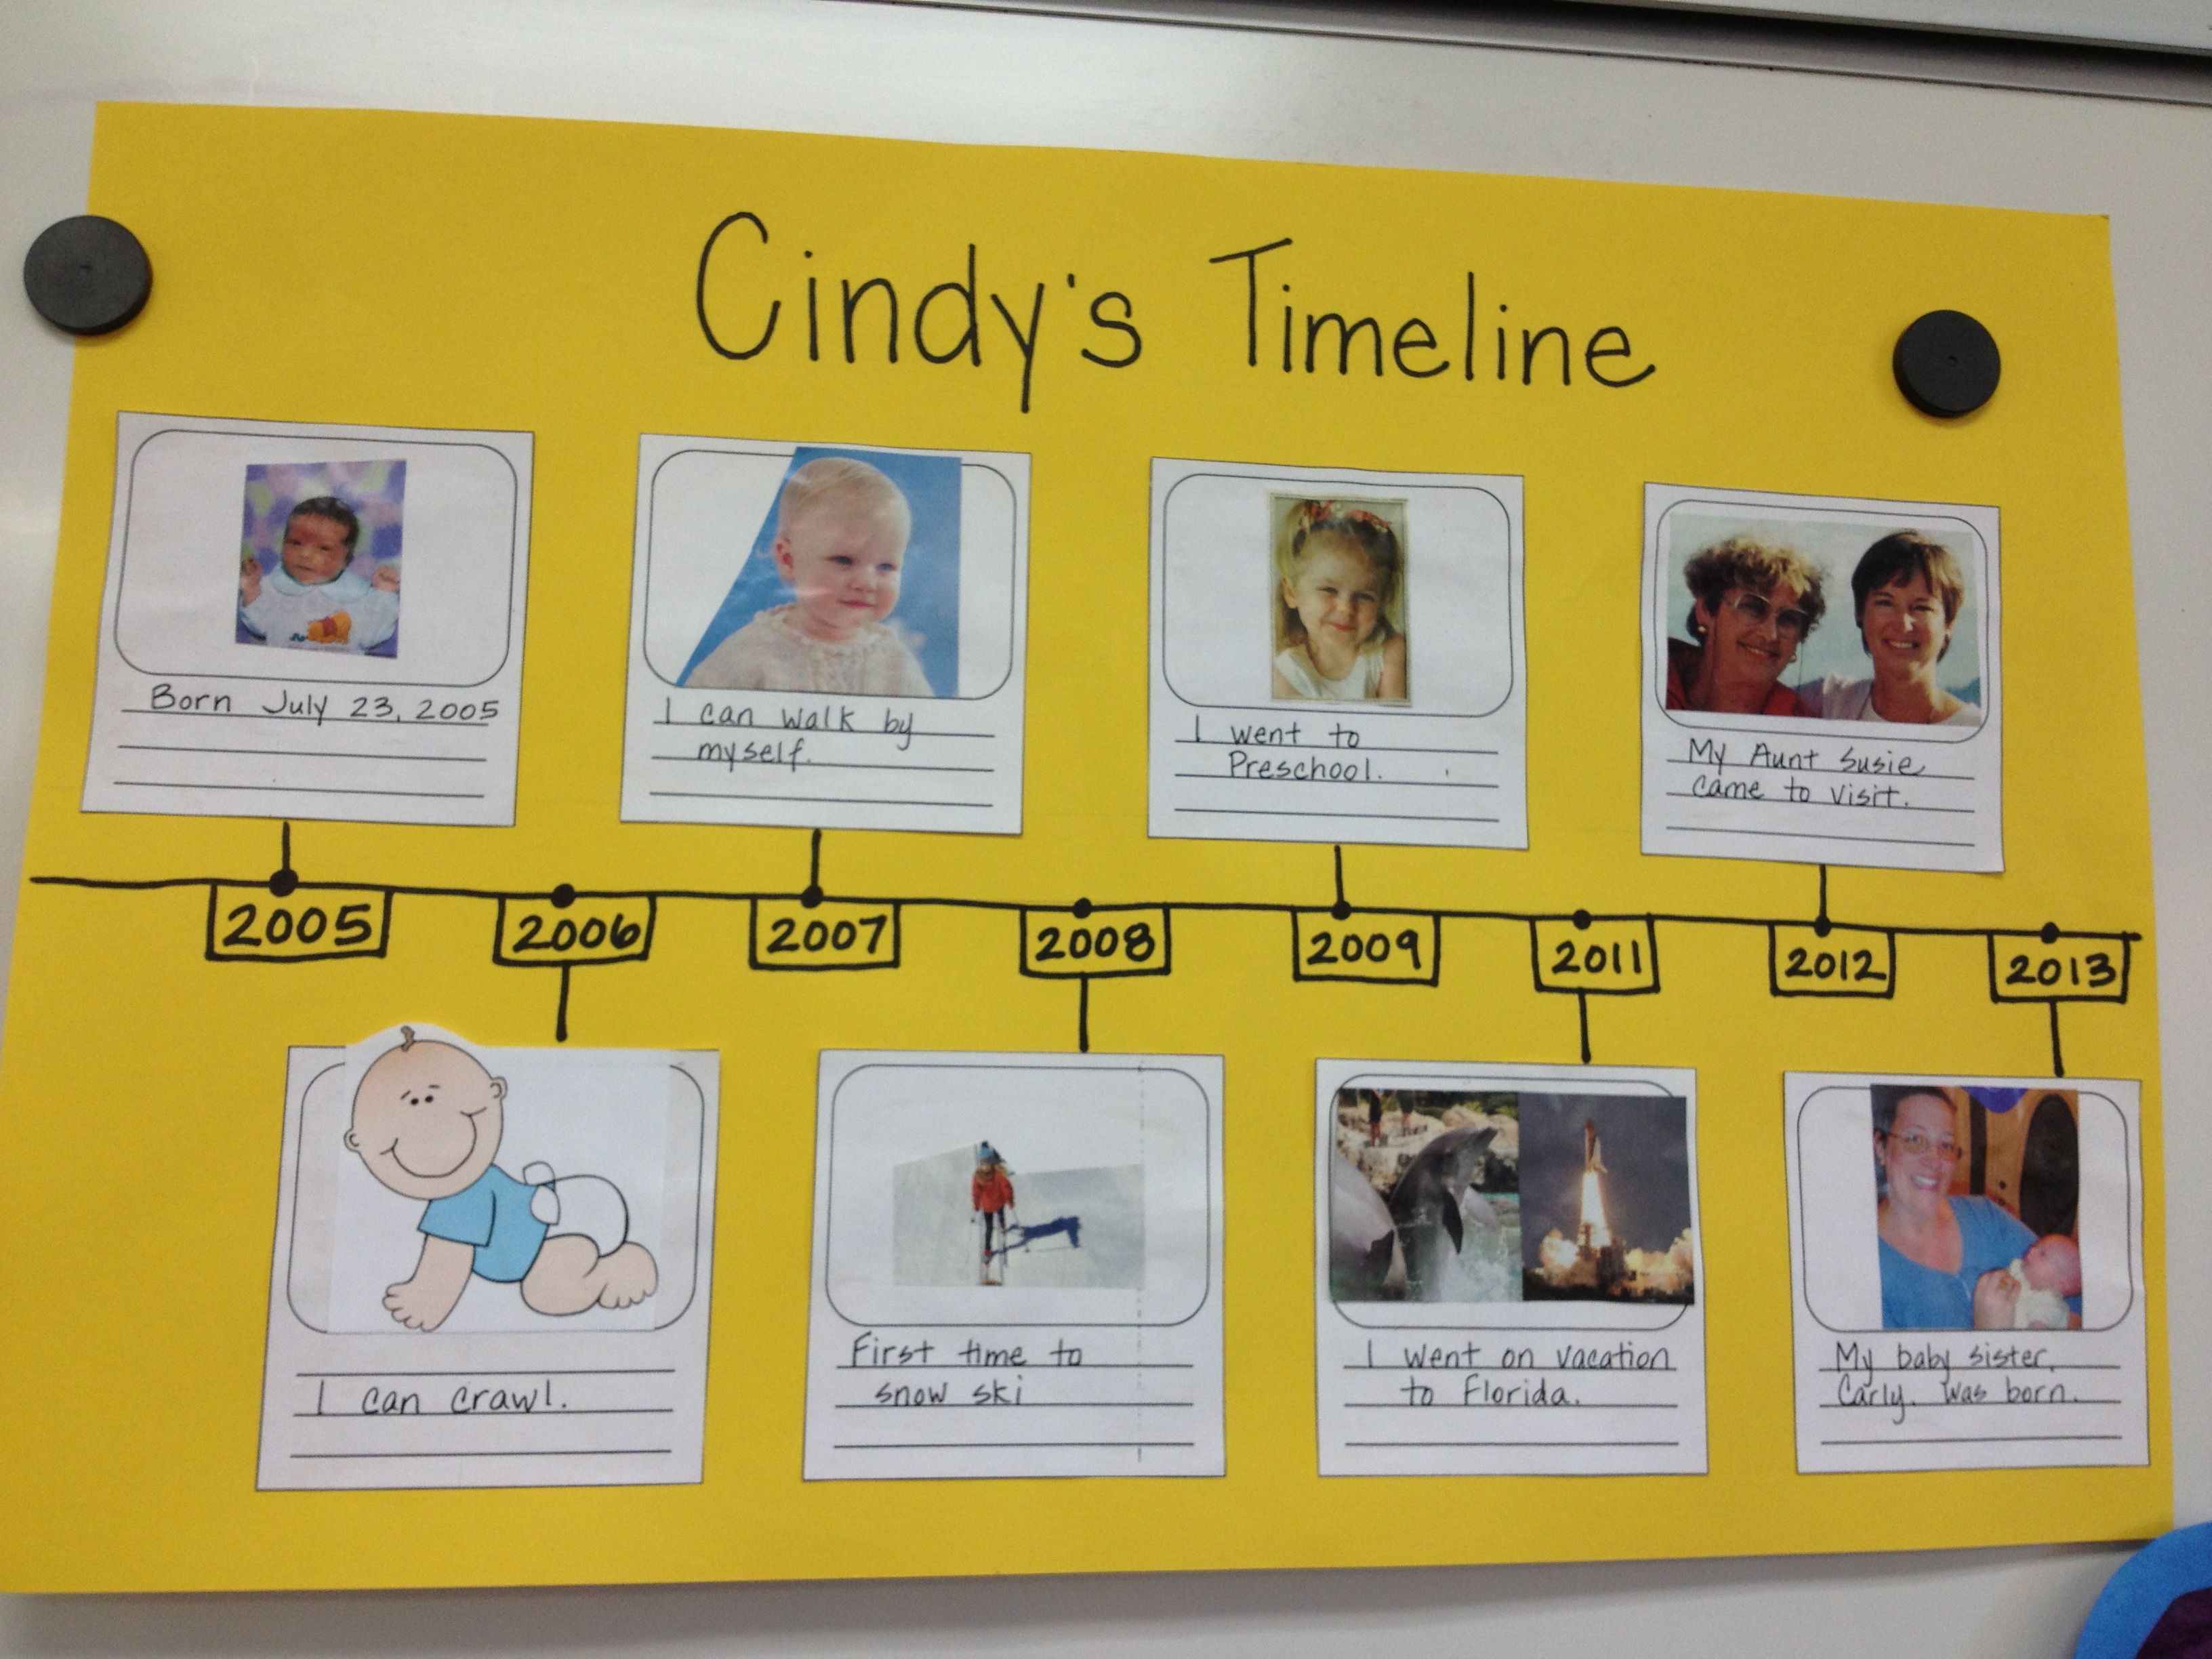 family timeline project   Gotta yotti co family timeline project